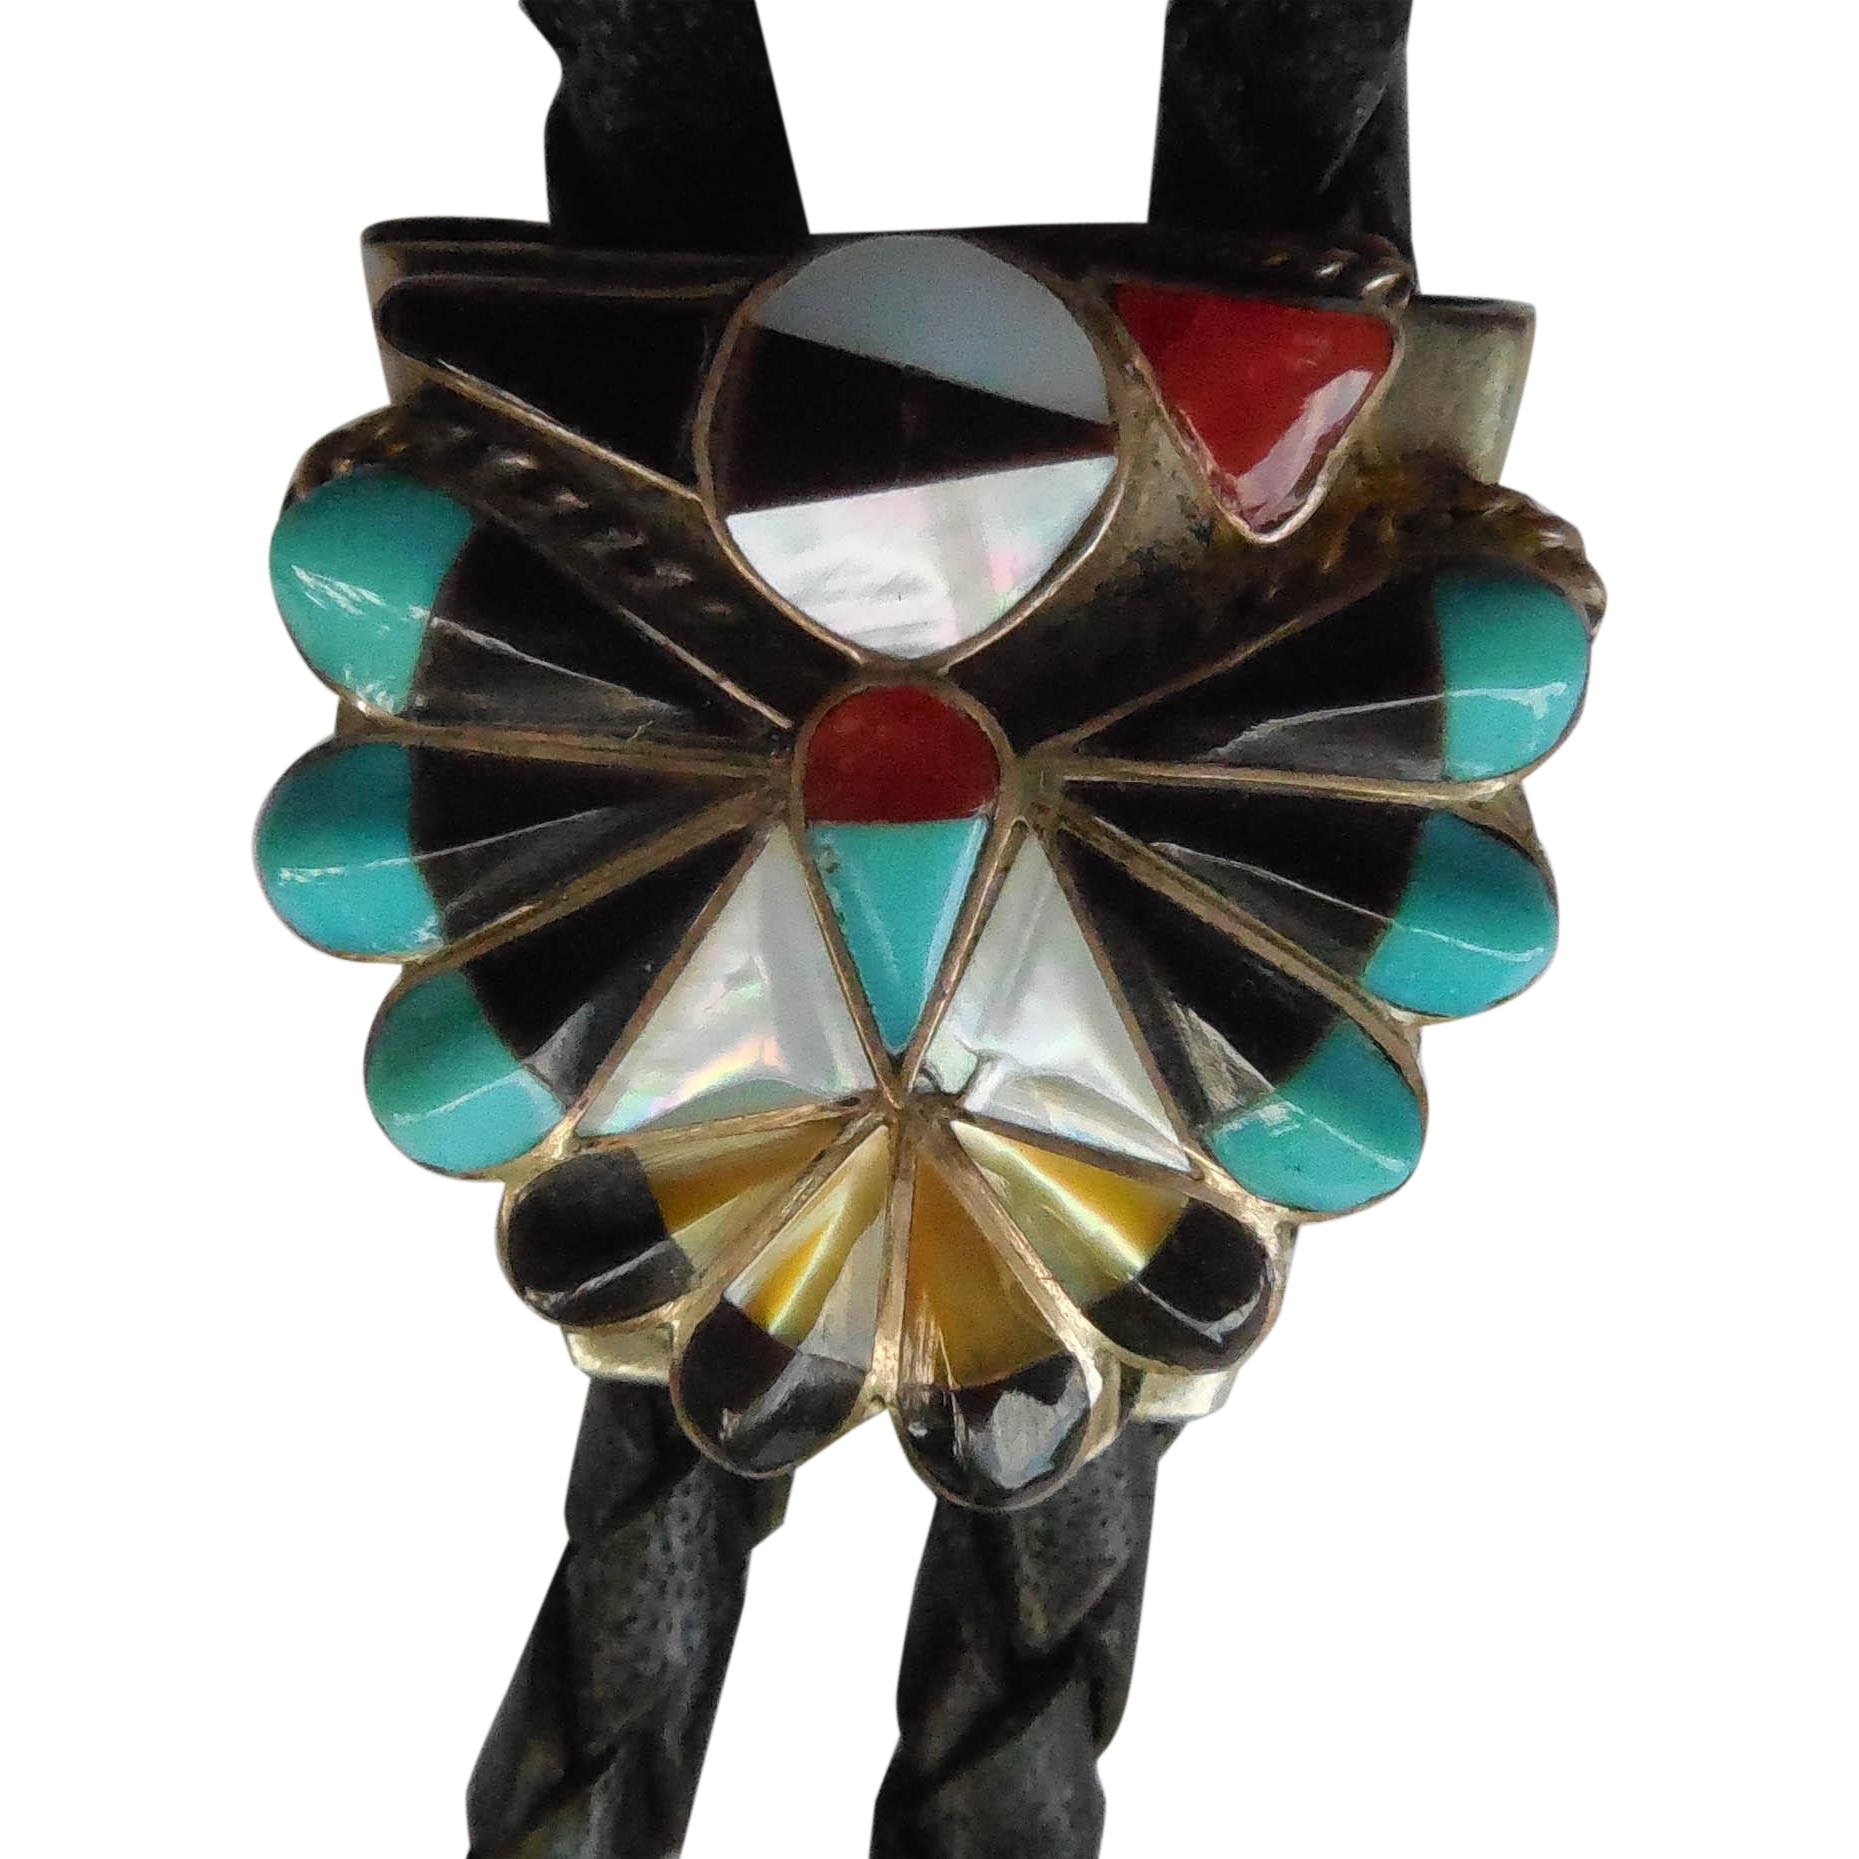 Vintage Native American Zuni Peyote Bird Bolo Tie With Inlaid Stones and Shell - RL Image MisOrdered